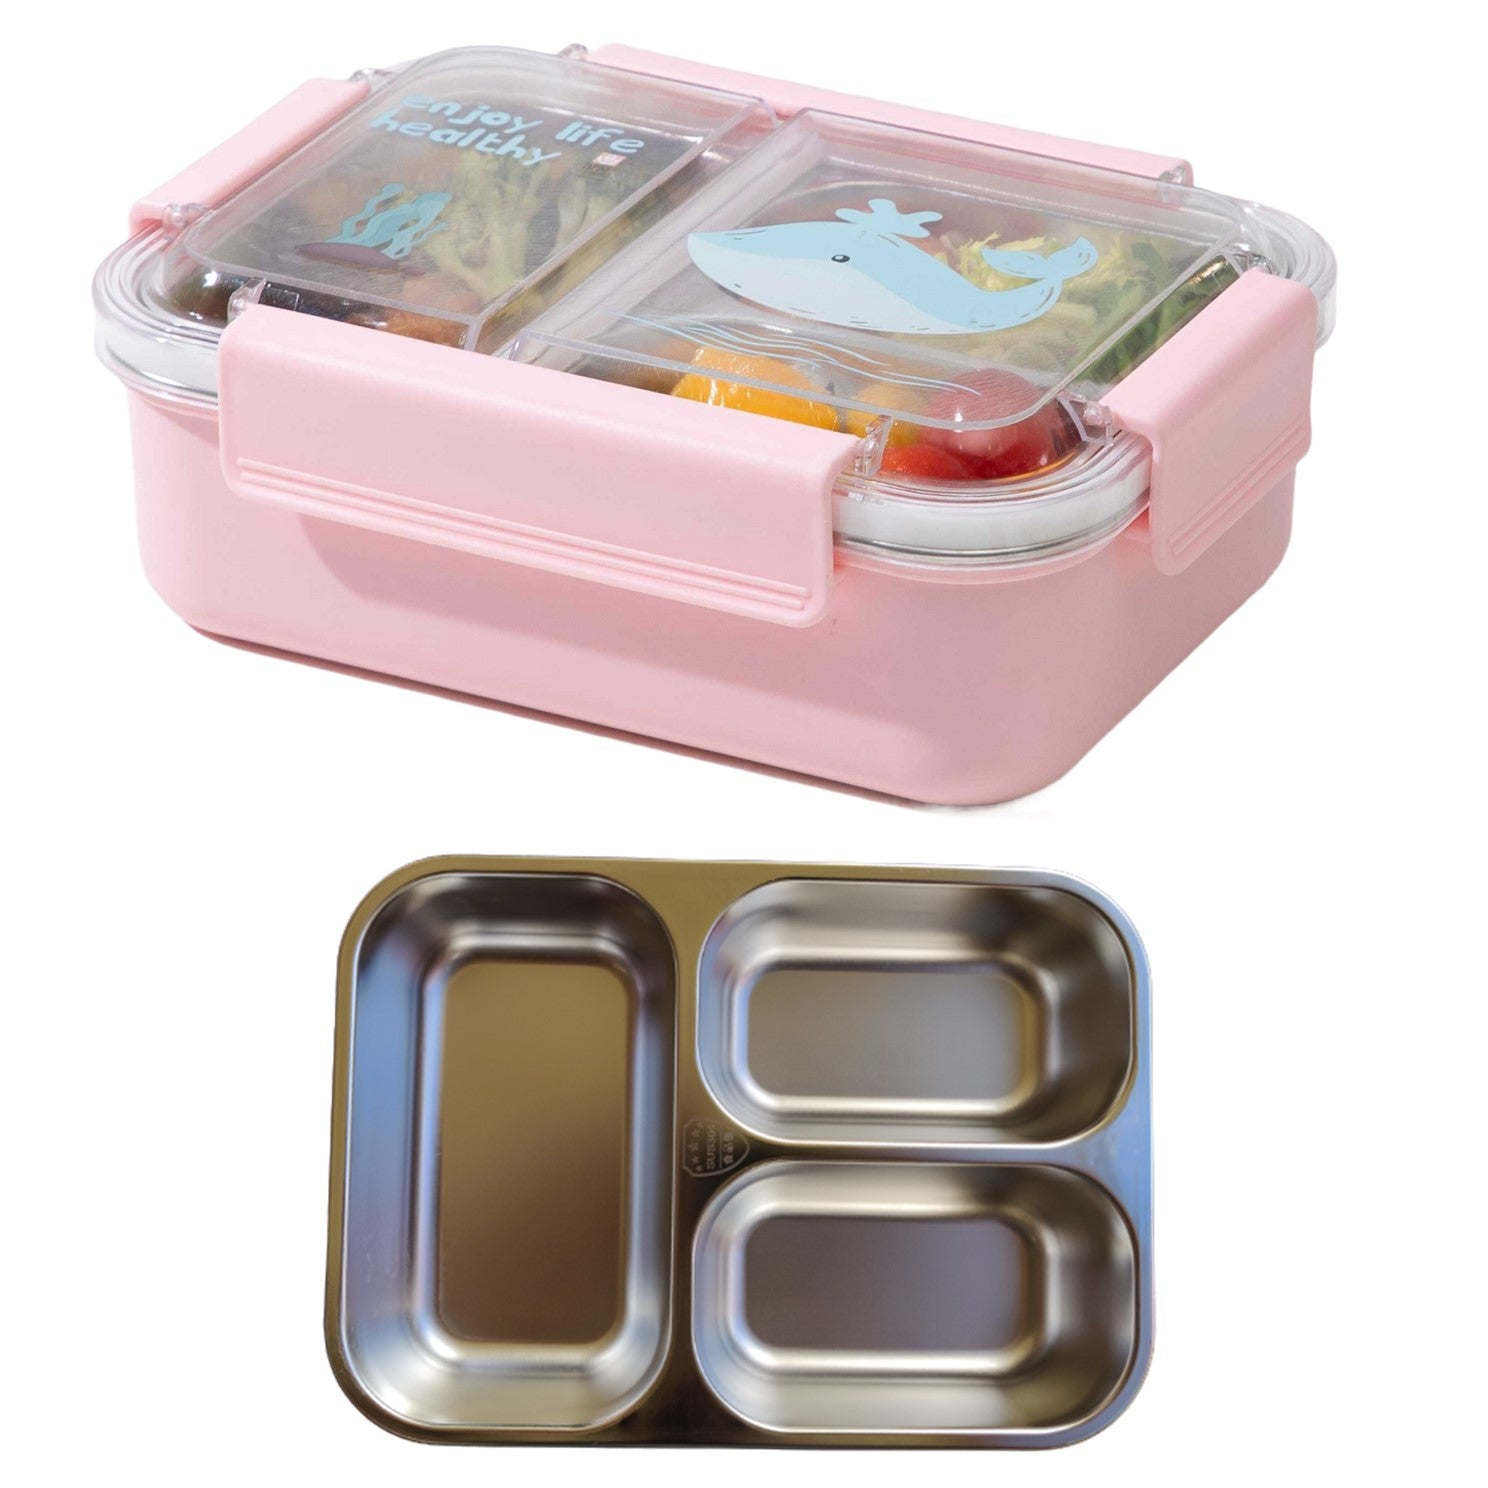 Stainless Steel 3 Compartment Leakproof Bento Lunch Box